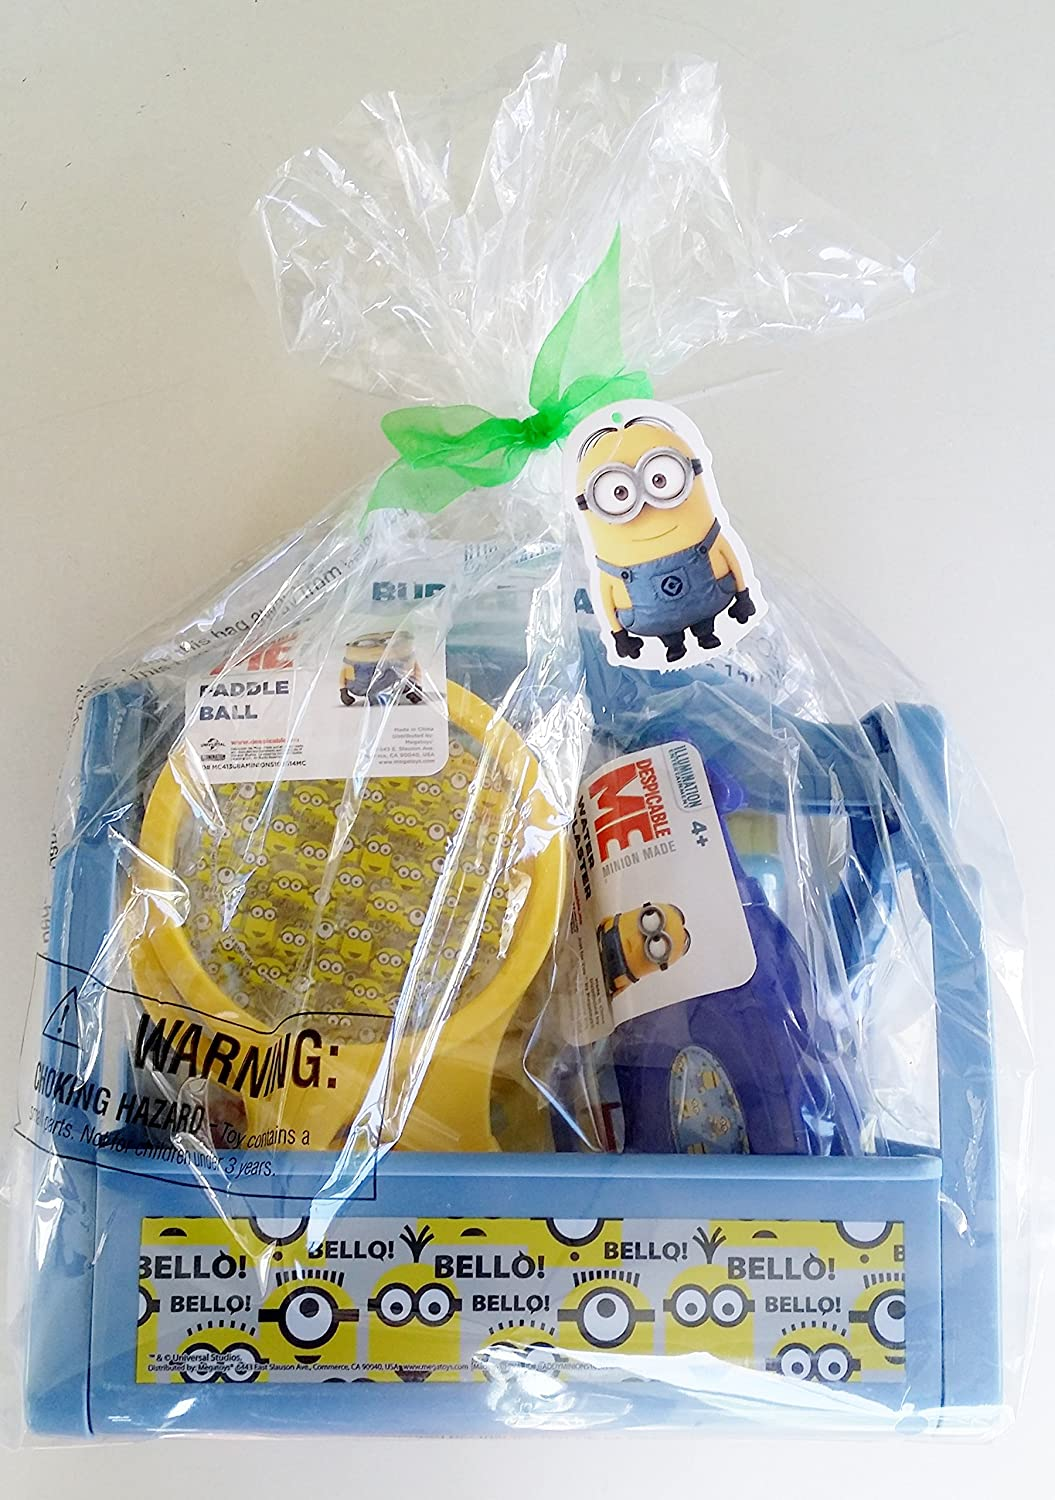 Despicable Me Caddy 4 Piece Gift Set Minion Made - Water Gun, Paddle Ball Set, Bubble Wand with Solution all in a Fun Minion Container! despicable me unicorn minion stuffed